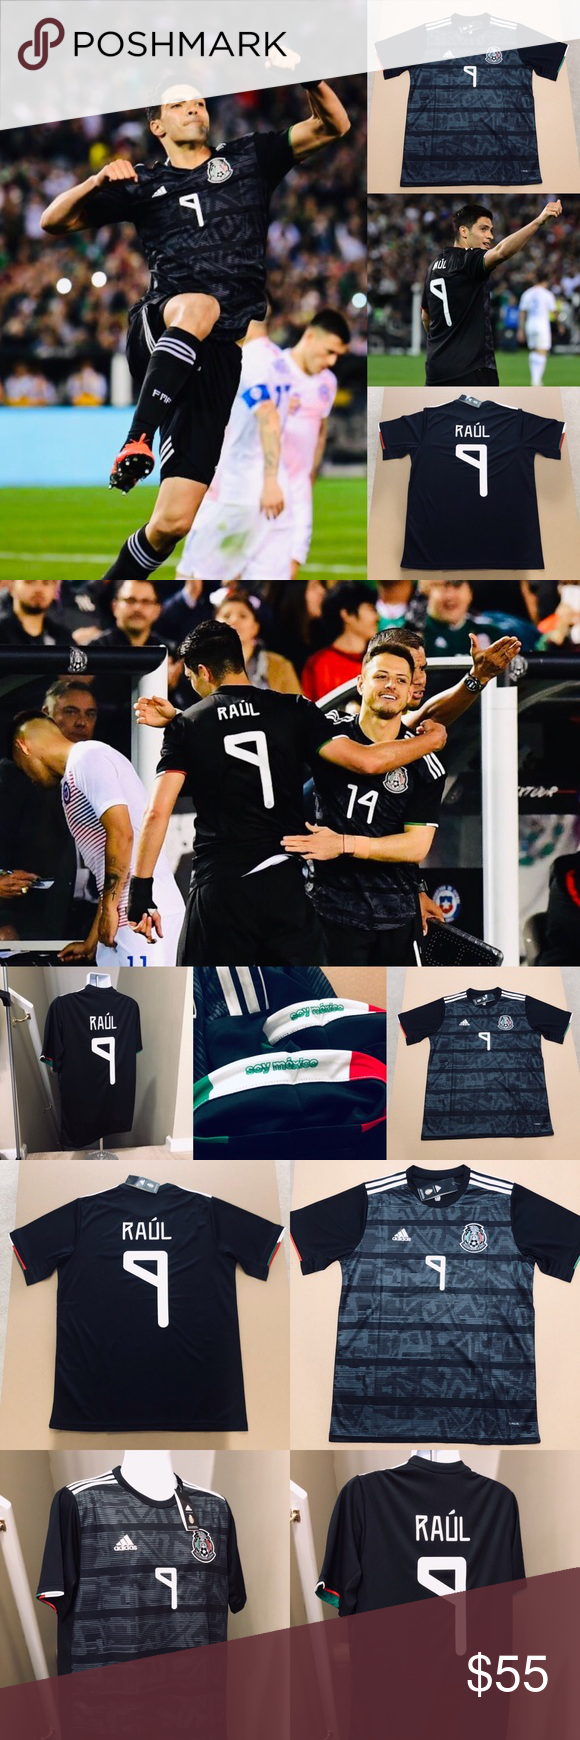 bd4ba595f 2019 Adidas Mexico Raul Jimenez  9 Soccer Jersey 2019 Mexico National Soccer  Football Team •